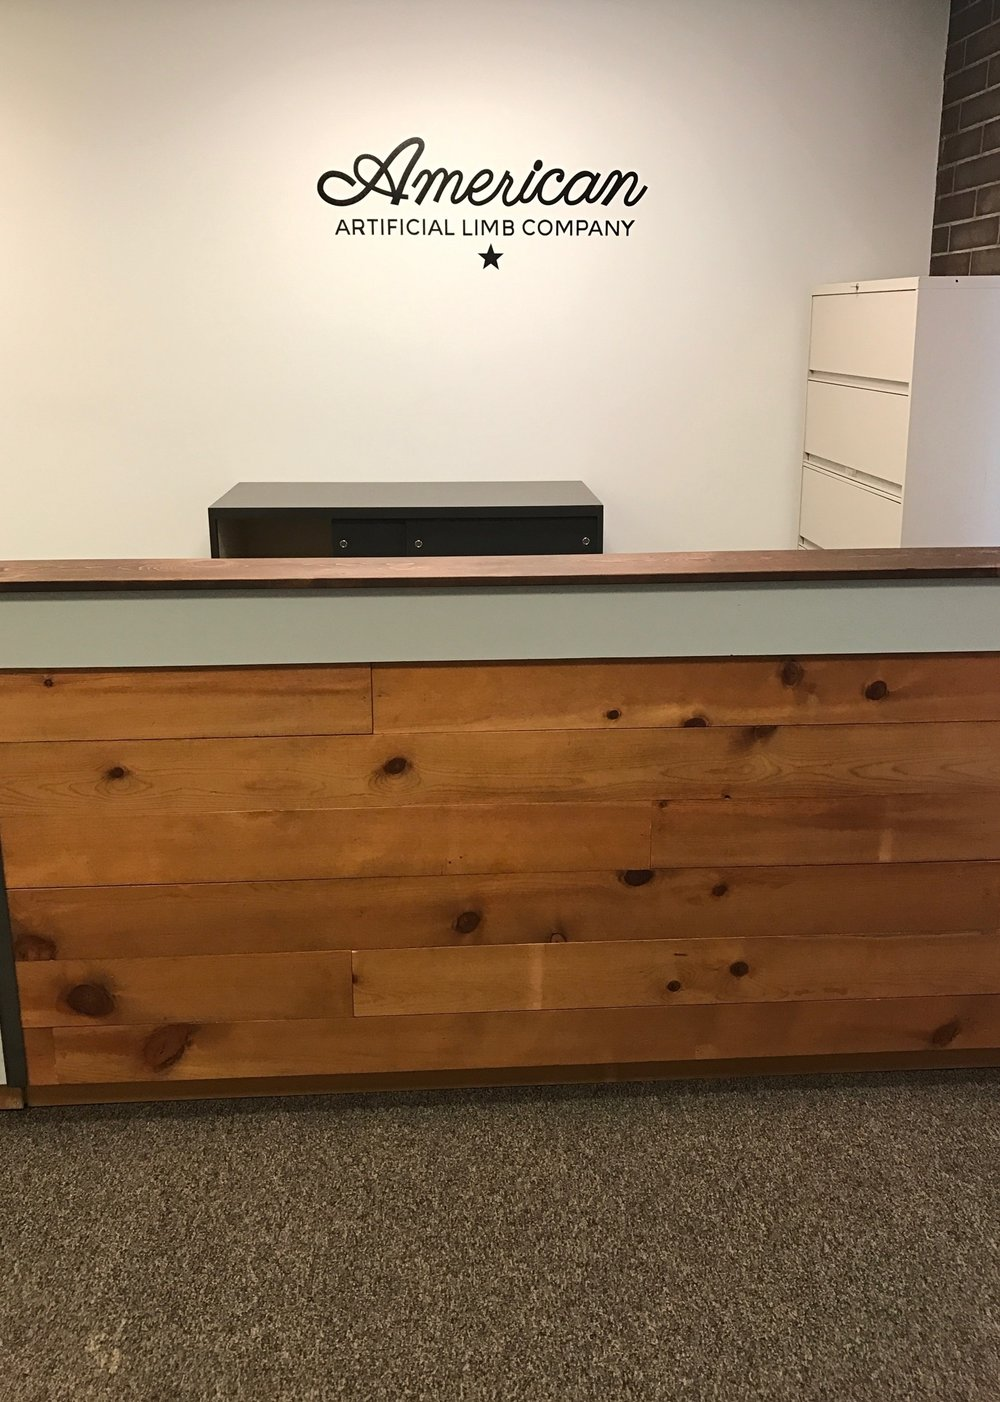 Our new reception desk- check out that snazzy logo!